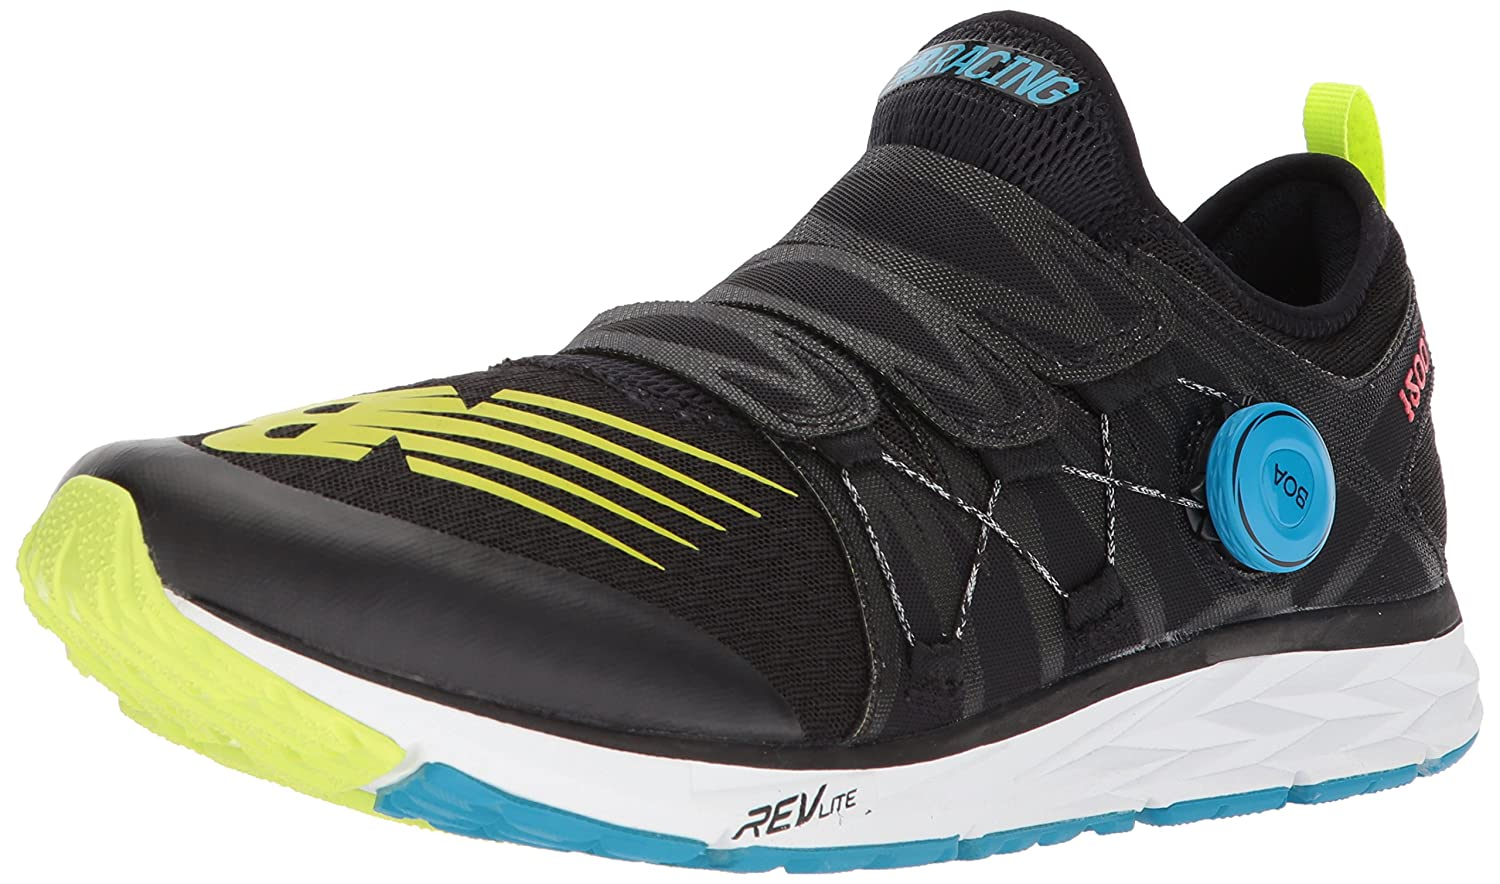 online store bb650 5adf8 New Balance Men's 1500v4 Running Shoe